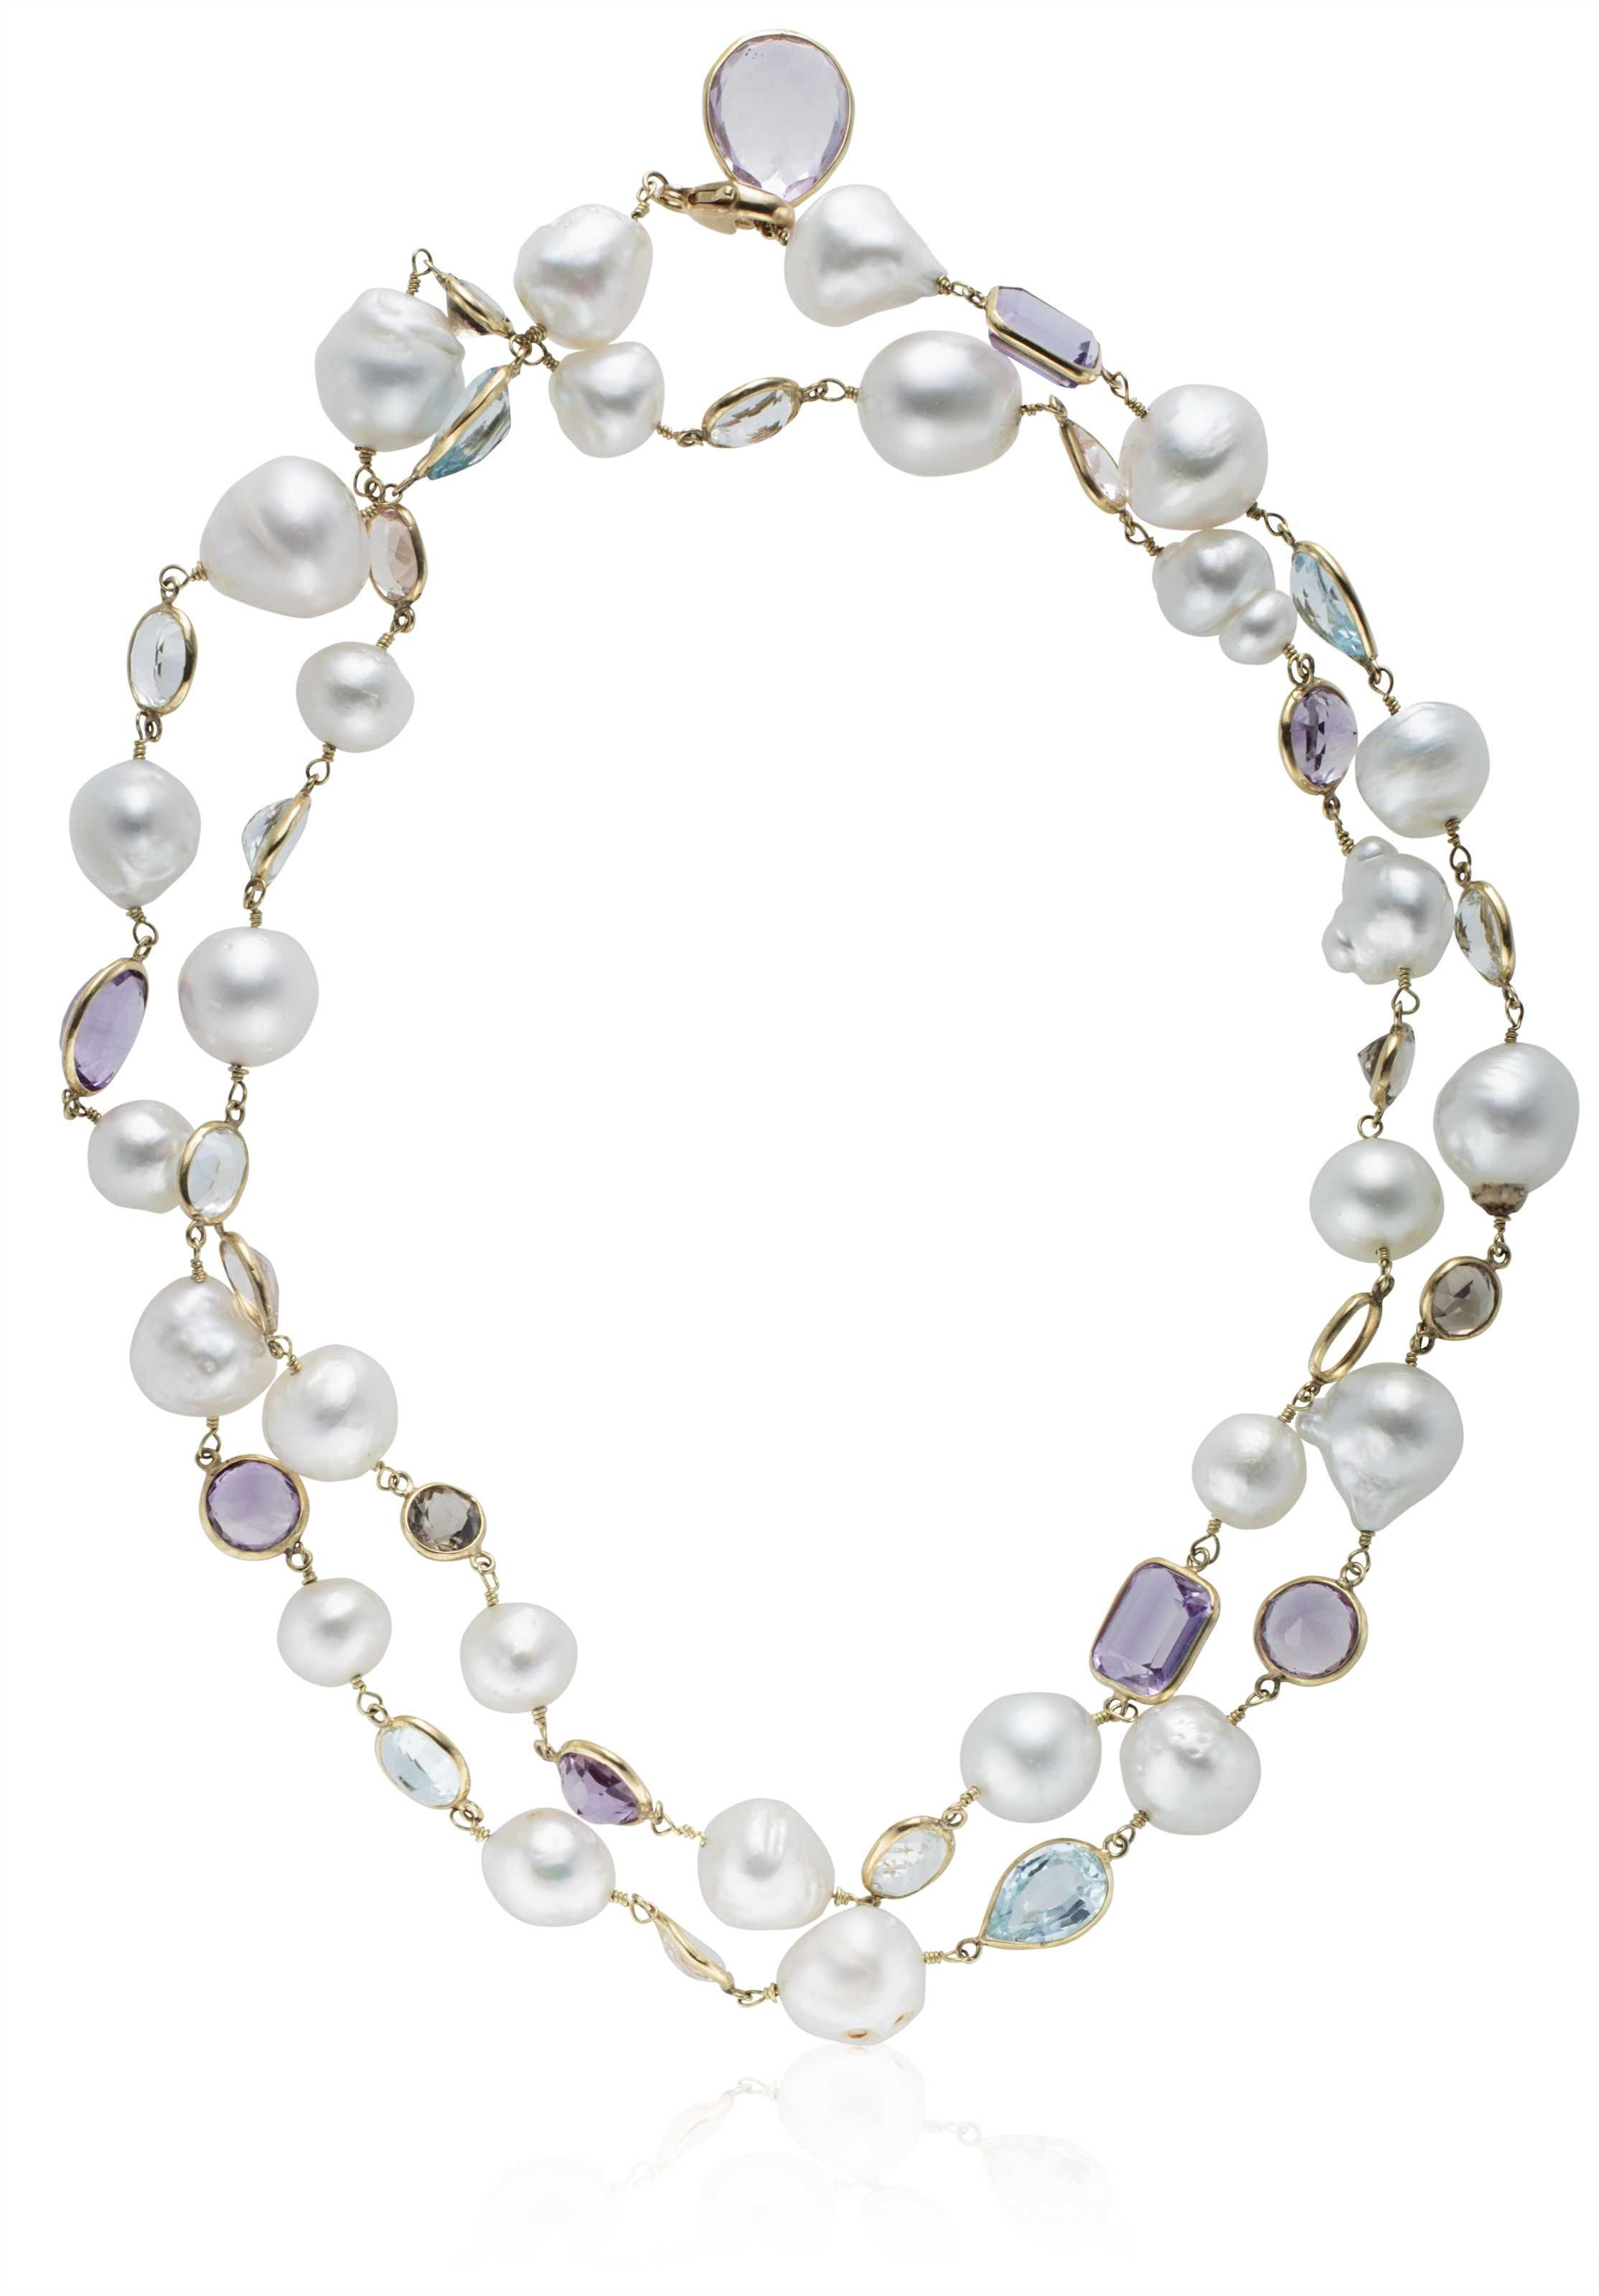 b98ba0869 BAROQUE CULTURED PEARL AND MULTI-GEM NECKLACE Christie's Christie's Jewels  online